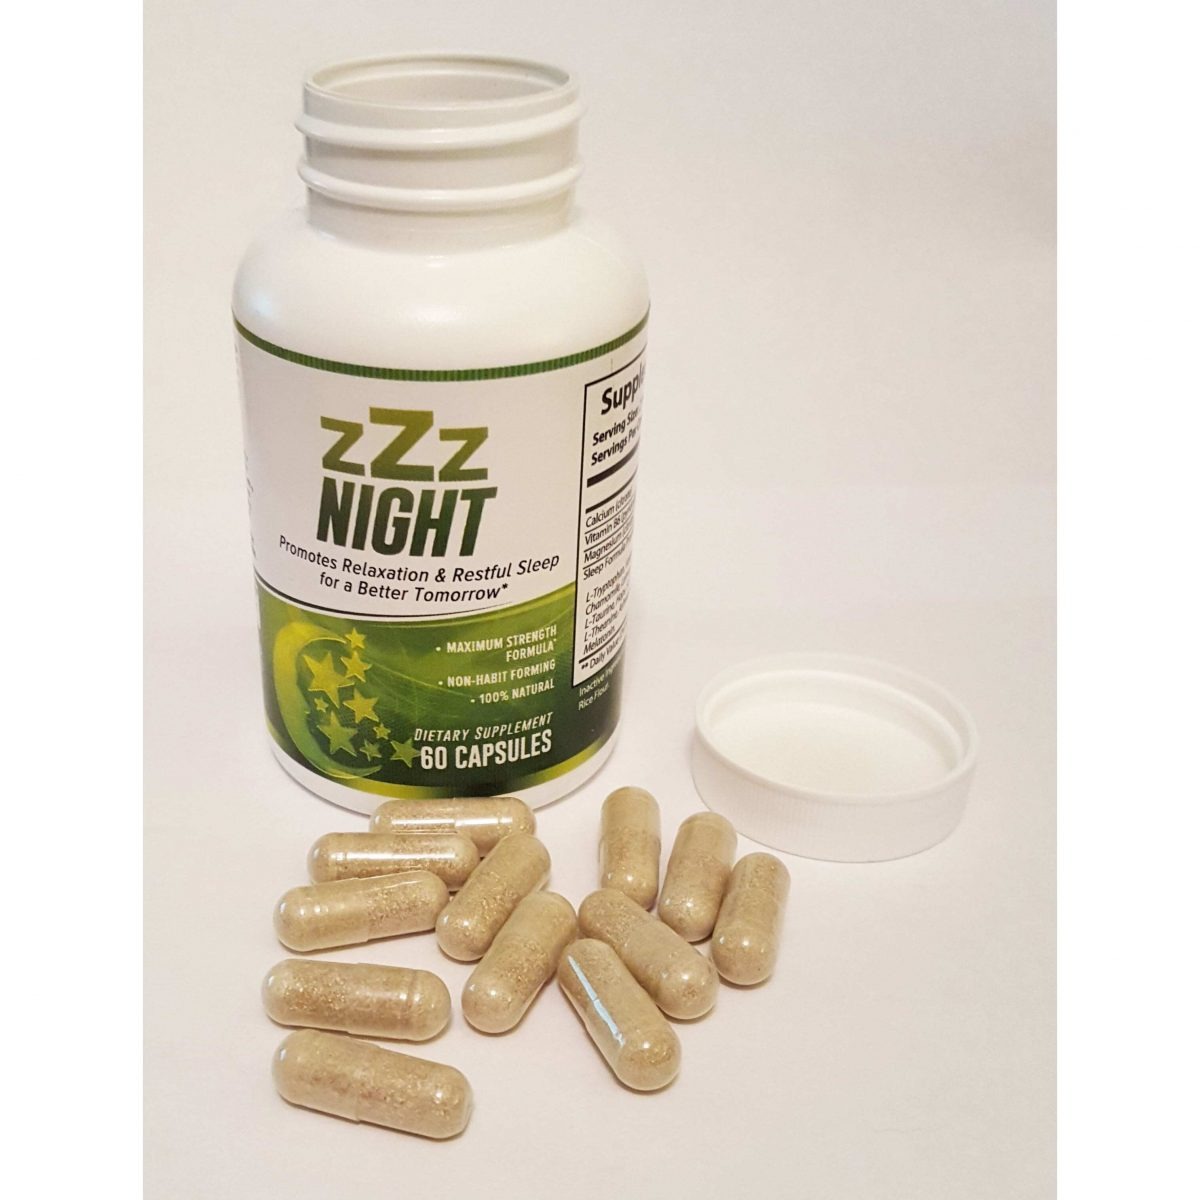 zZz Night Natural Sleep Aid - Non-Habit Sleeping Pills - Promotes Relaxation & Restful Sleep for a Better Tomorrow - 60 Capsules-651